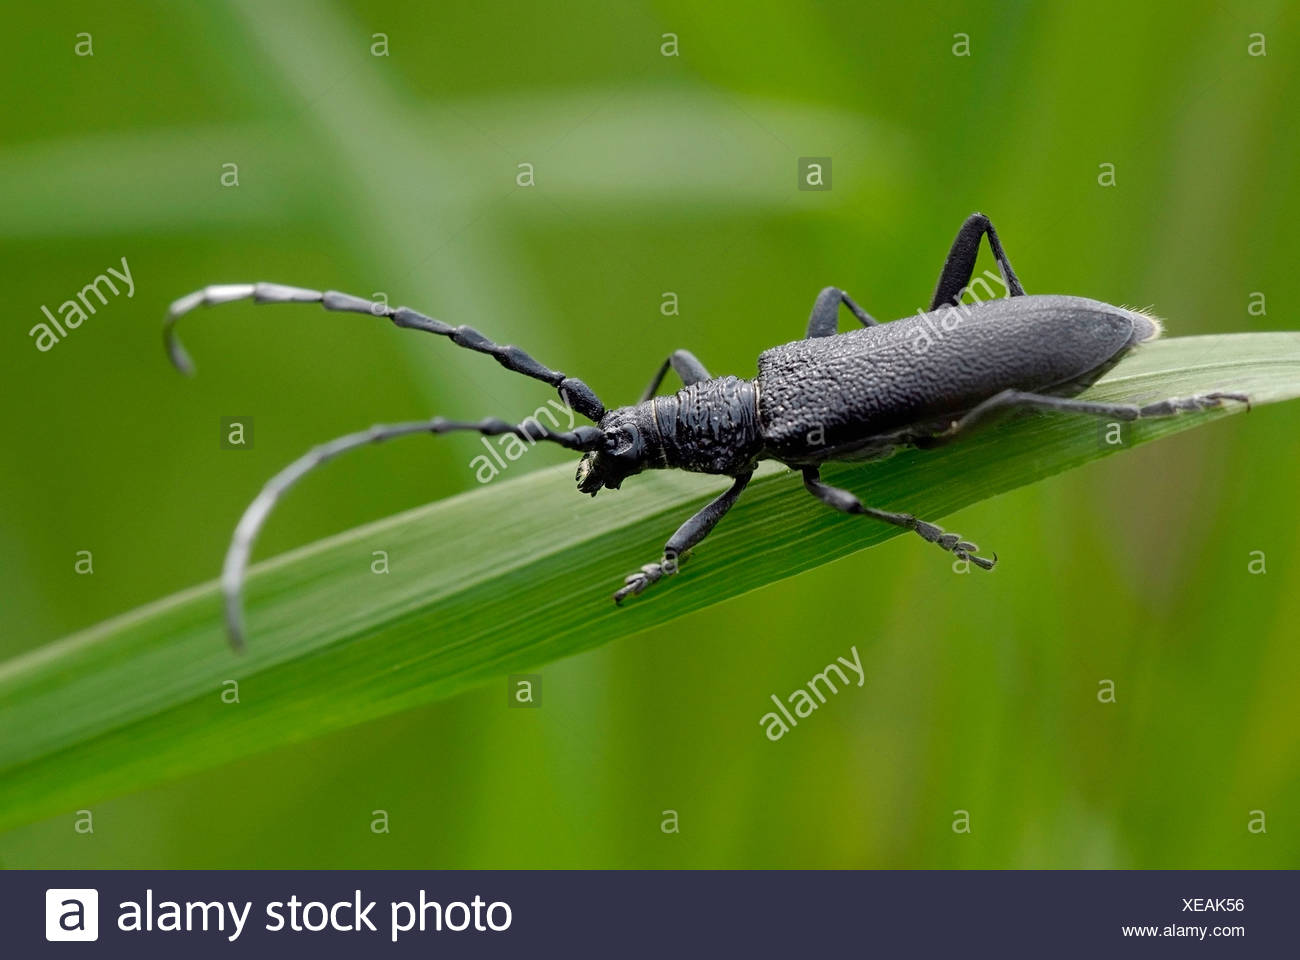 great capricorn beetle stock photos great capricorn beetle stock images alamy. Black Bedroom Furniture Sets. Home Design Ideas